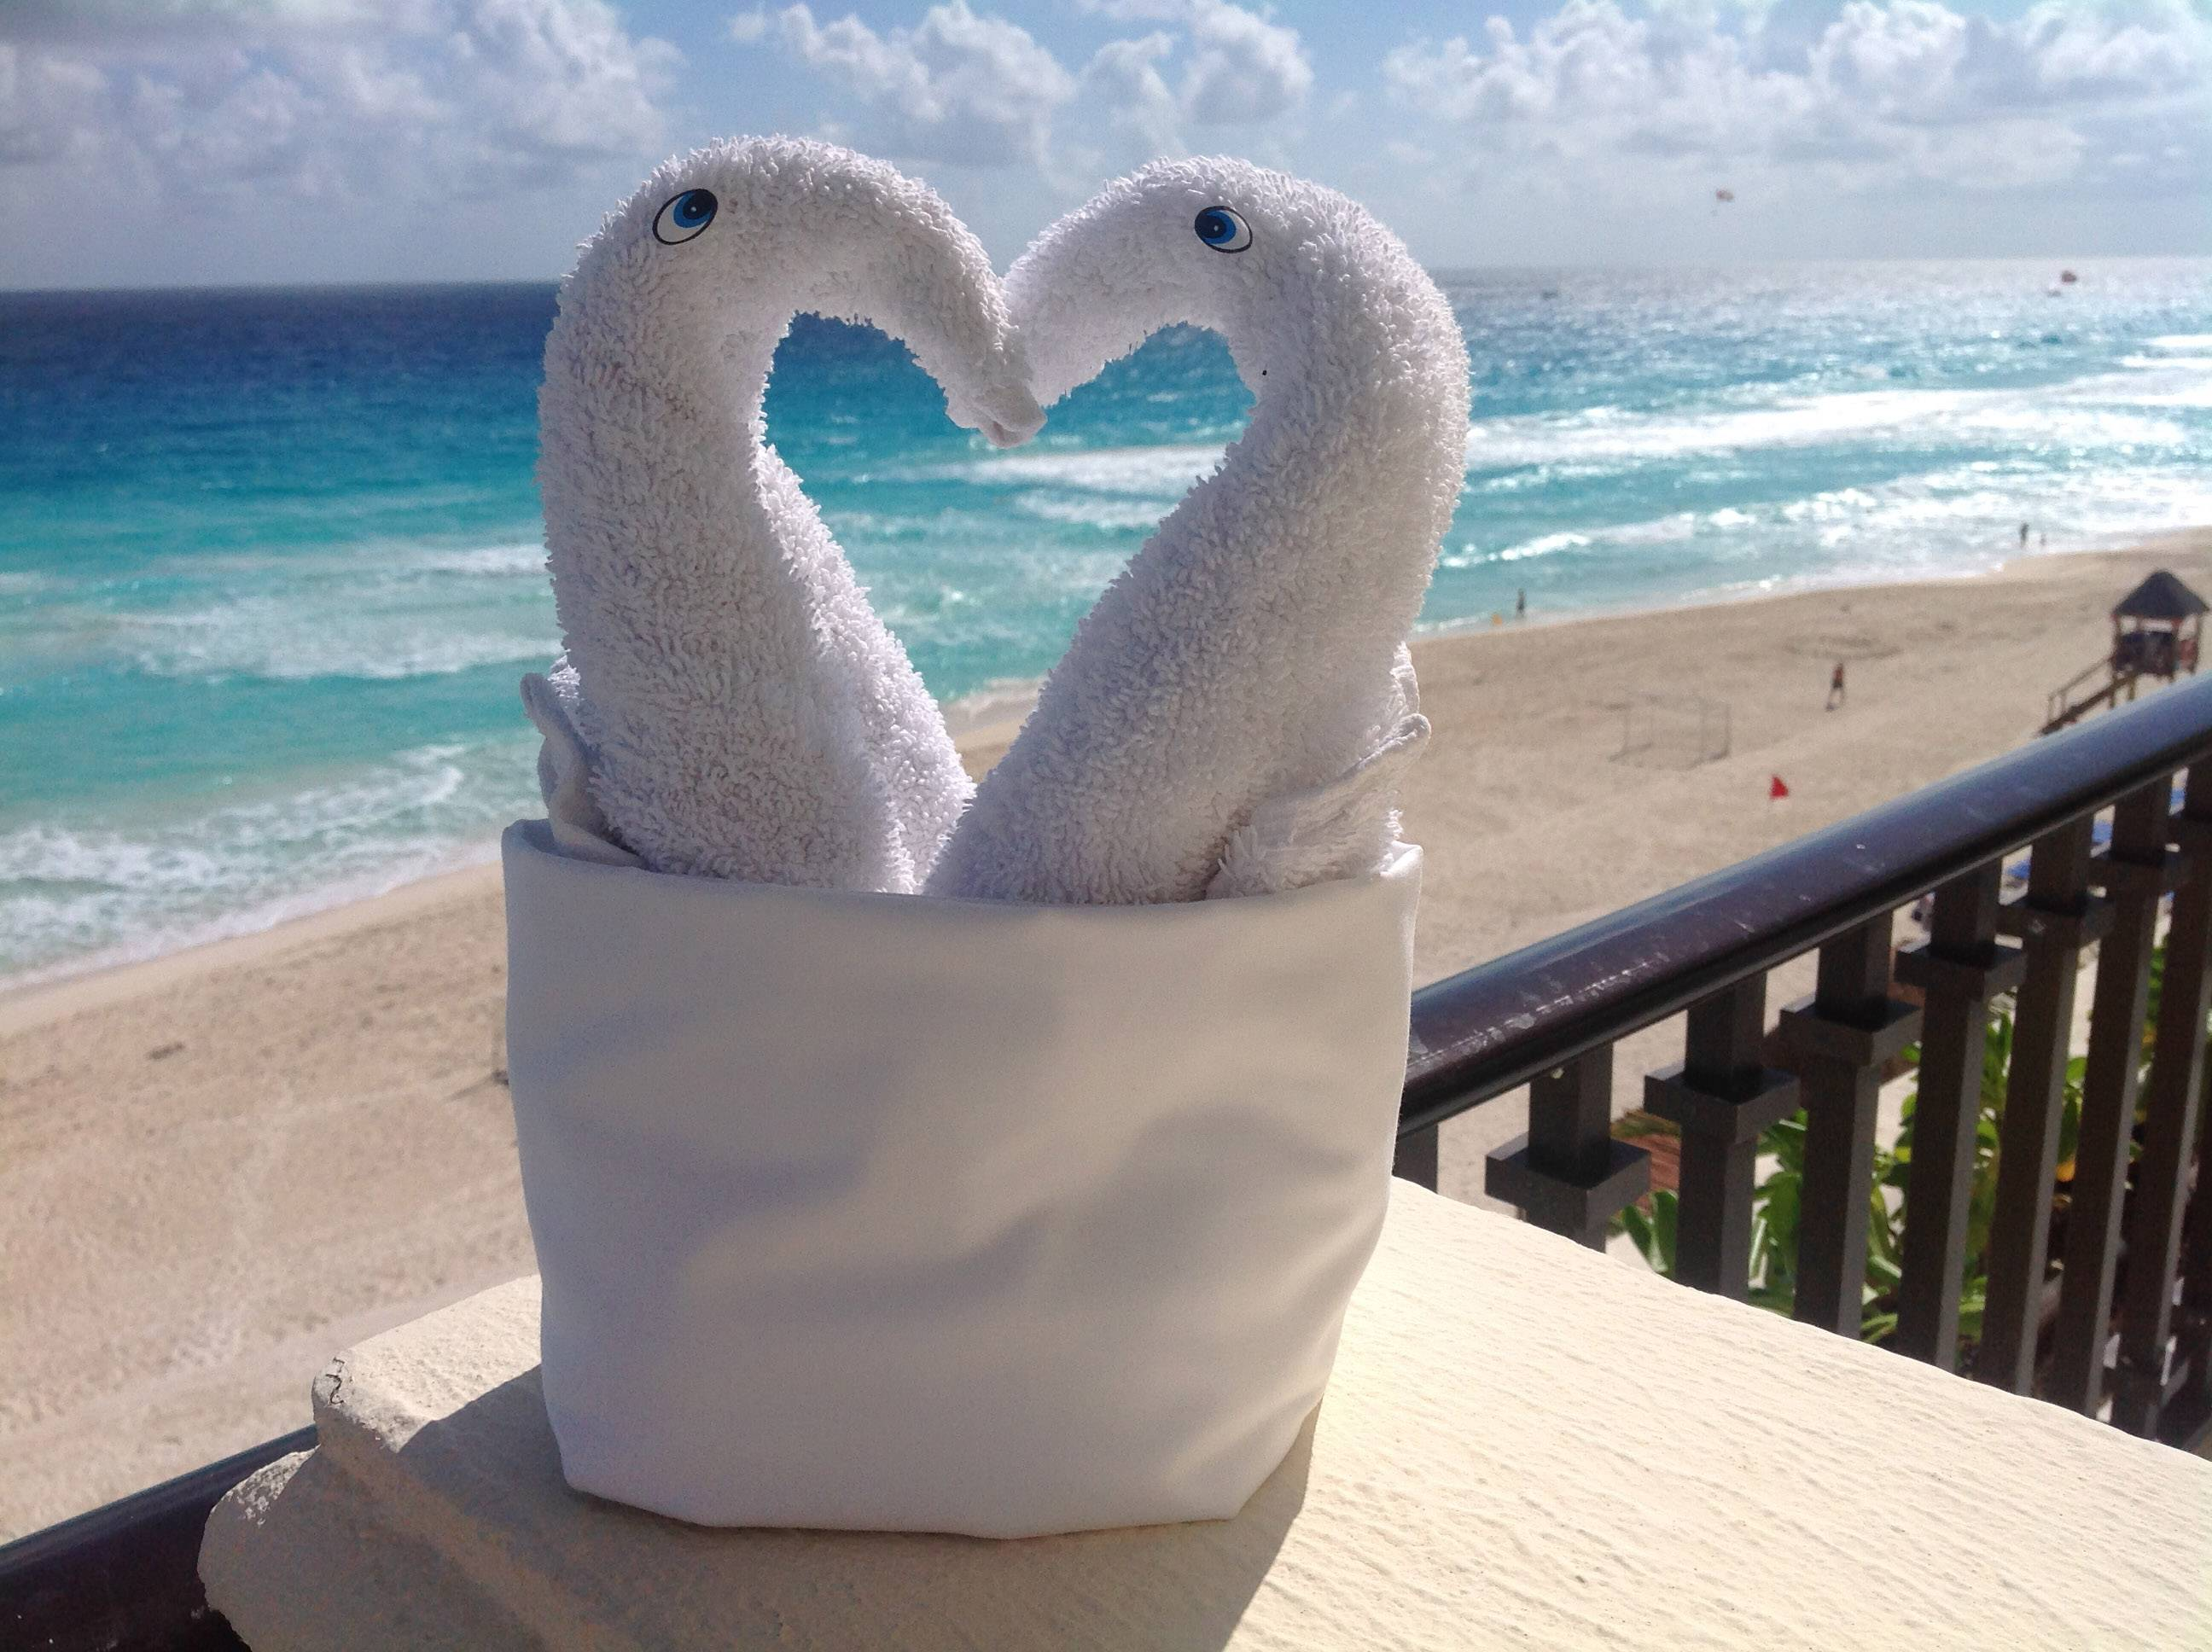 I took this photo from my Cancun hotel balcony in early December. The hotel cleaning staff had made these cute birds from wash cloths, I just took them outside for some fresh air.